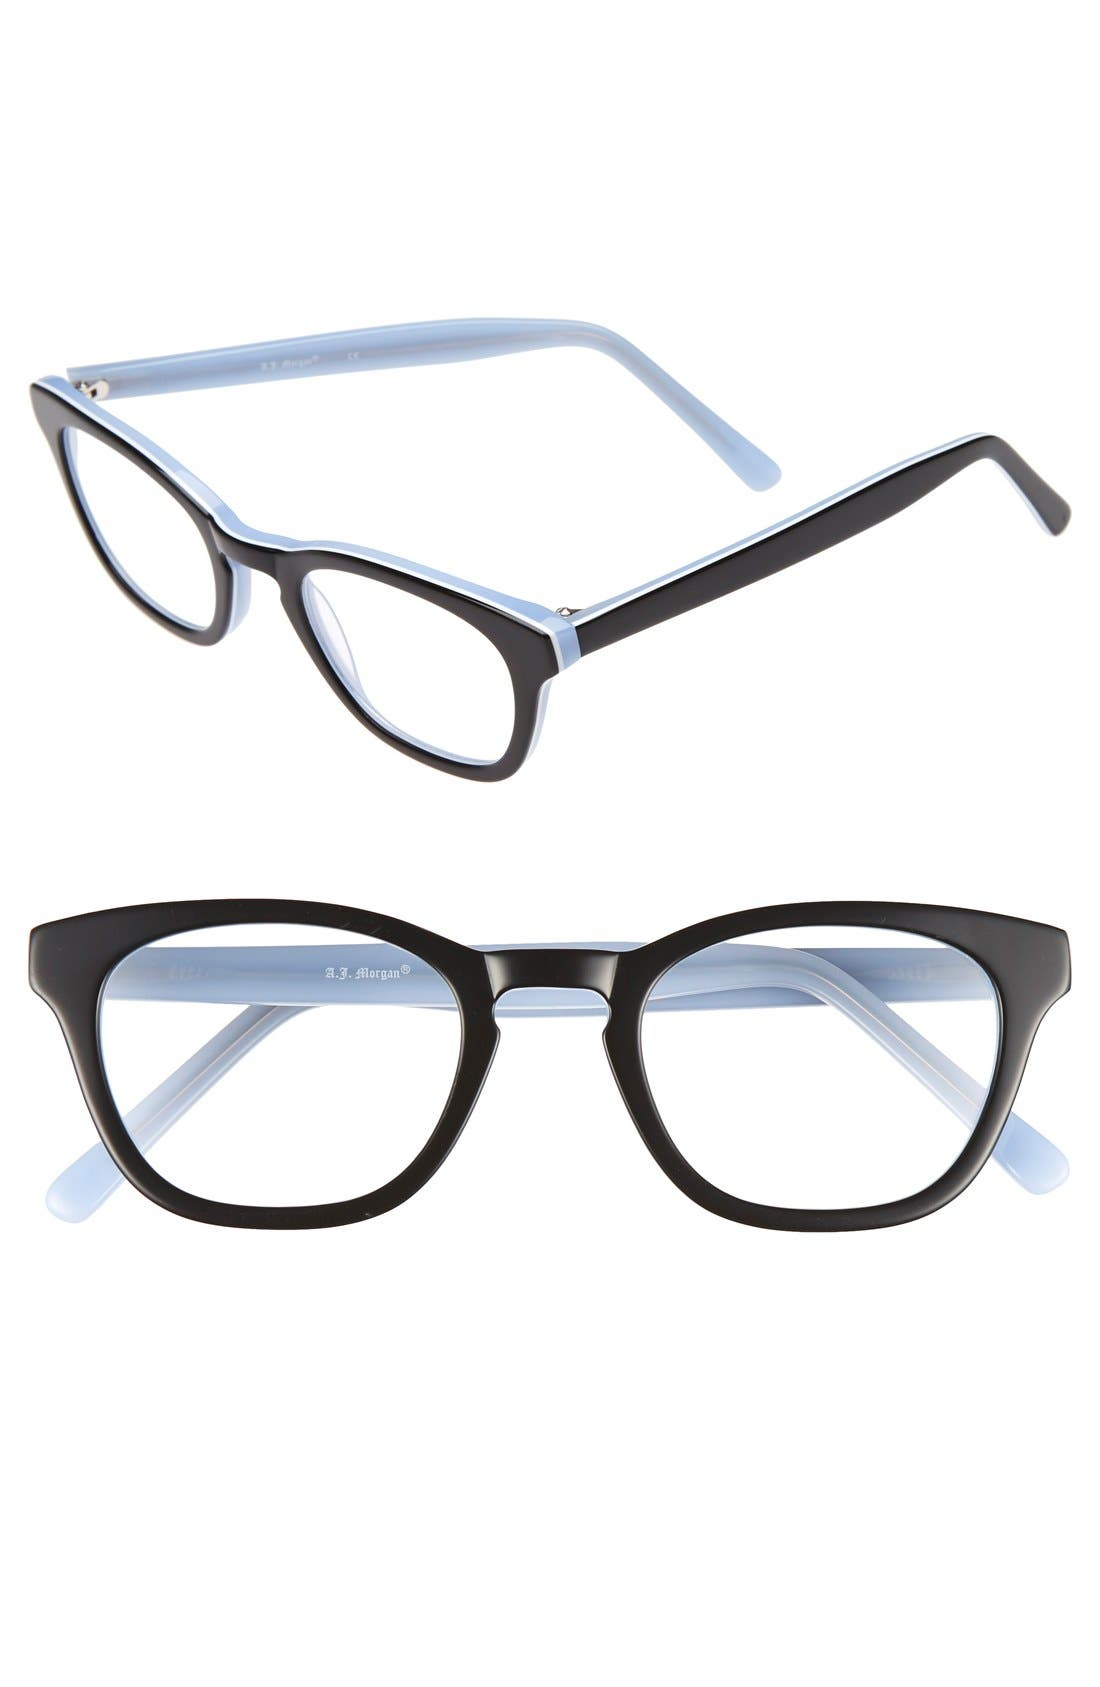 a j click 48mm reading glasses nordstrom